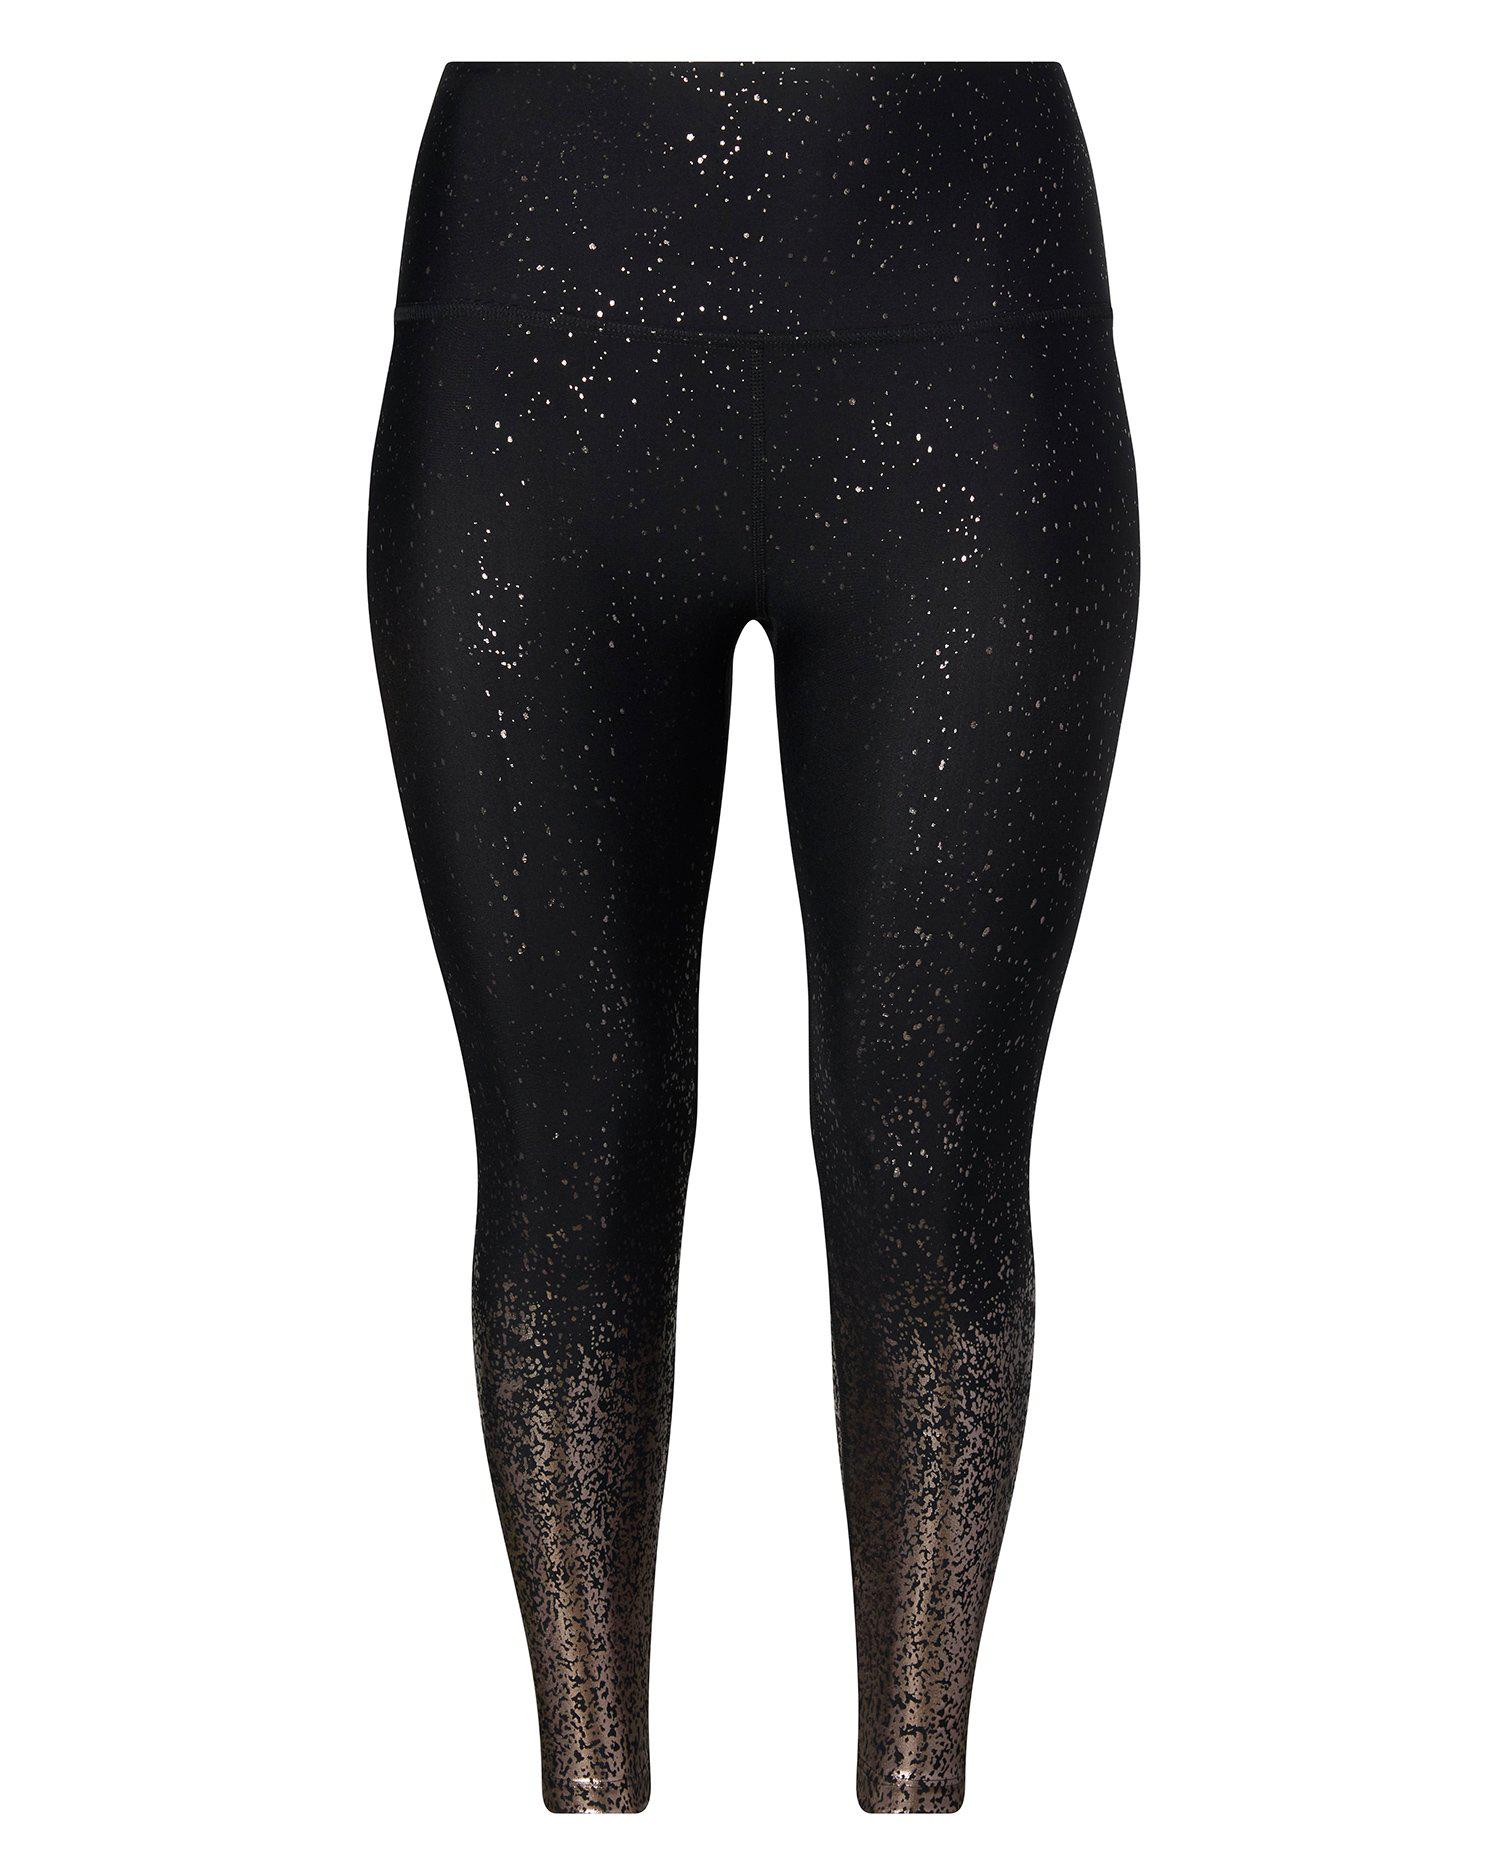 c86d467adc807 Lyst - Beyond Yoga Alloy Ombre High Waisted Midi Legging in Black